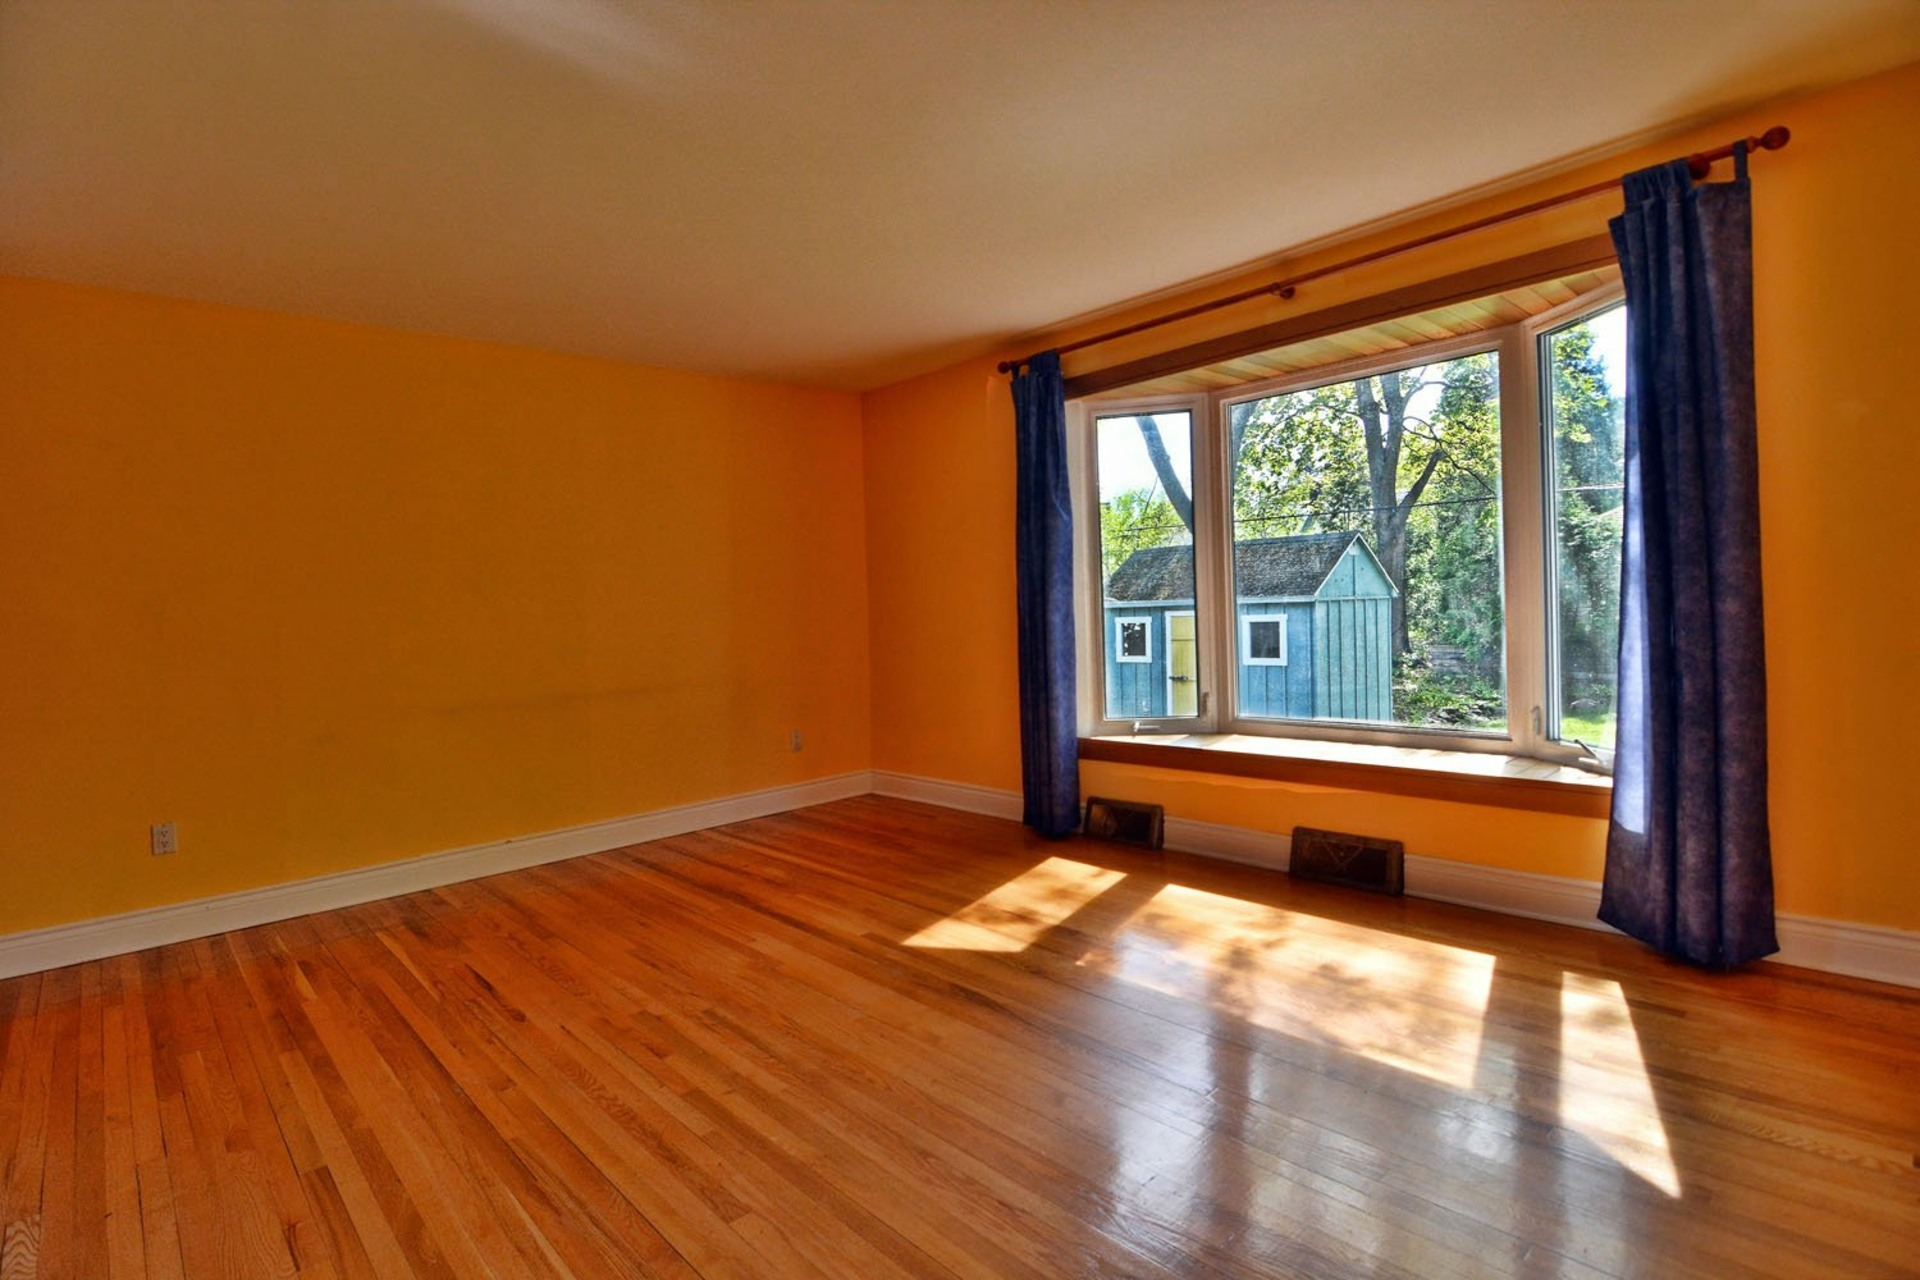 image 7 - House For rent Beaconsfield - 7 rooms